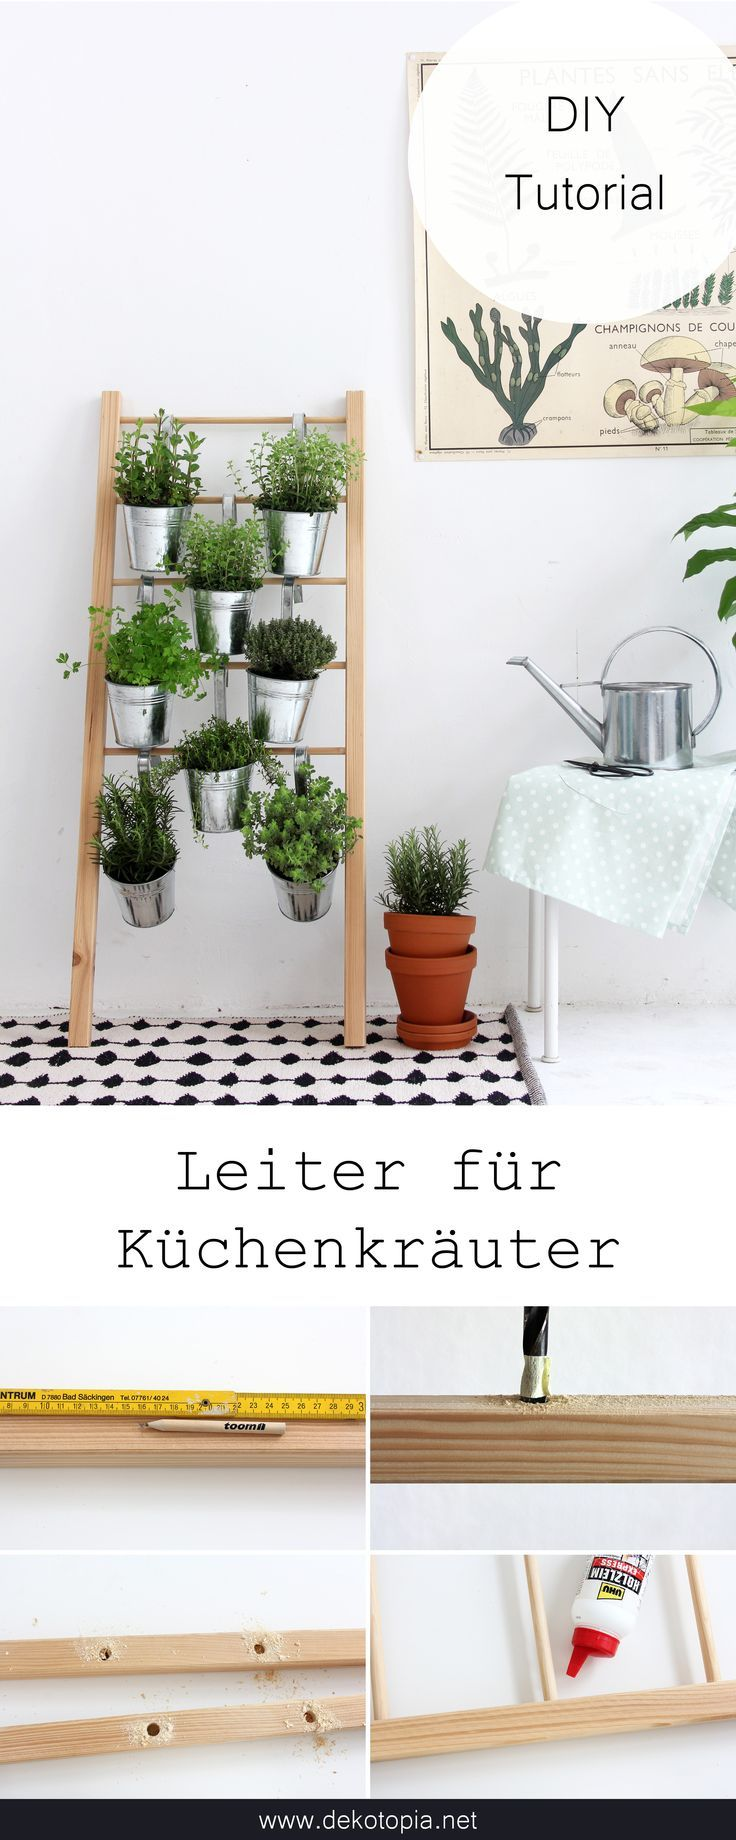 -   DIY instructions: Space-saving plant idea for your kitchen herbs – build herbal ladder yourself